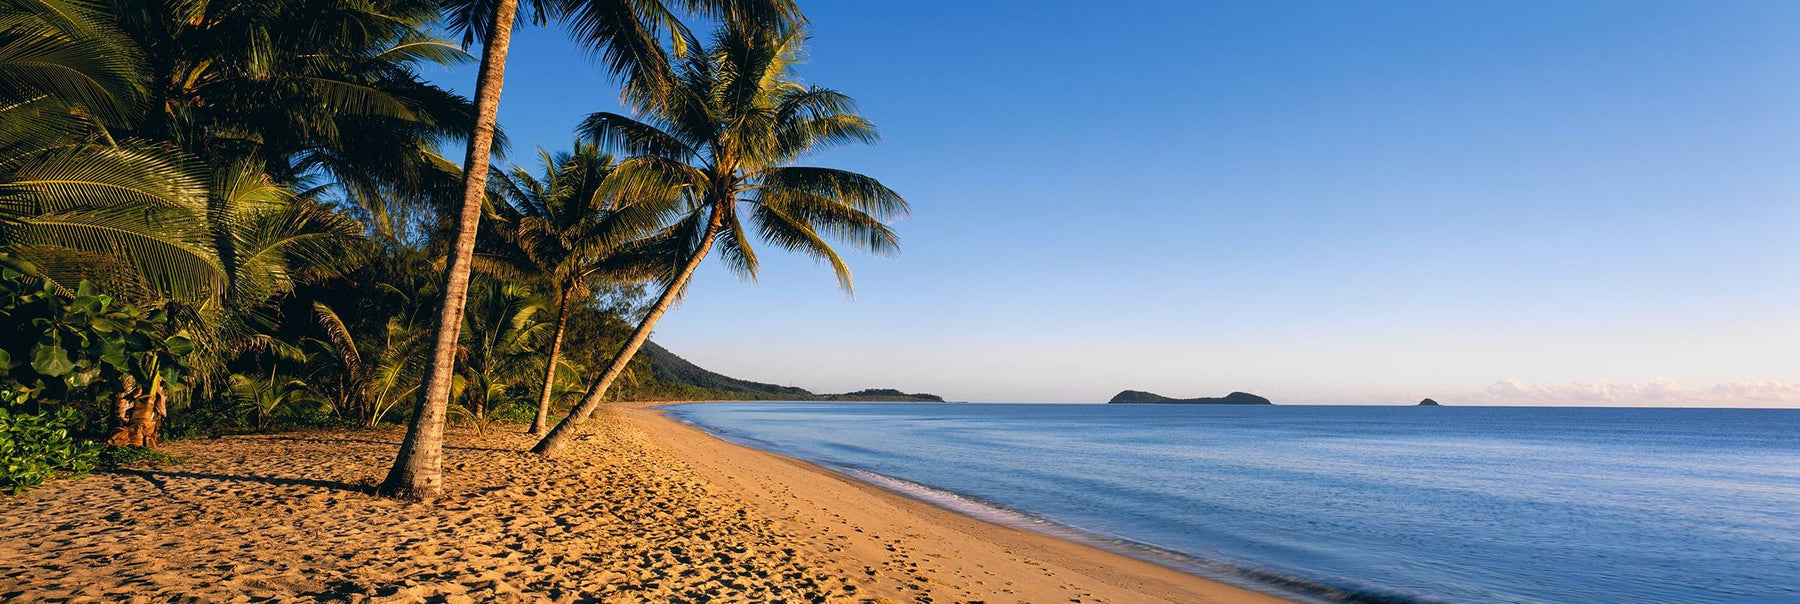 Palm tree lined beach on the coast of Queensland Australia